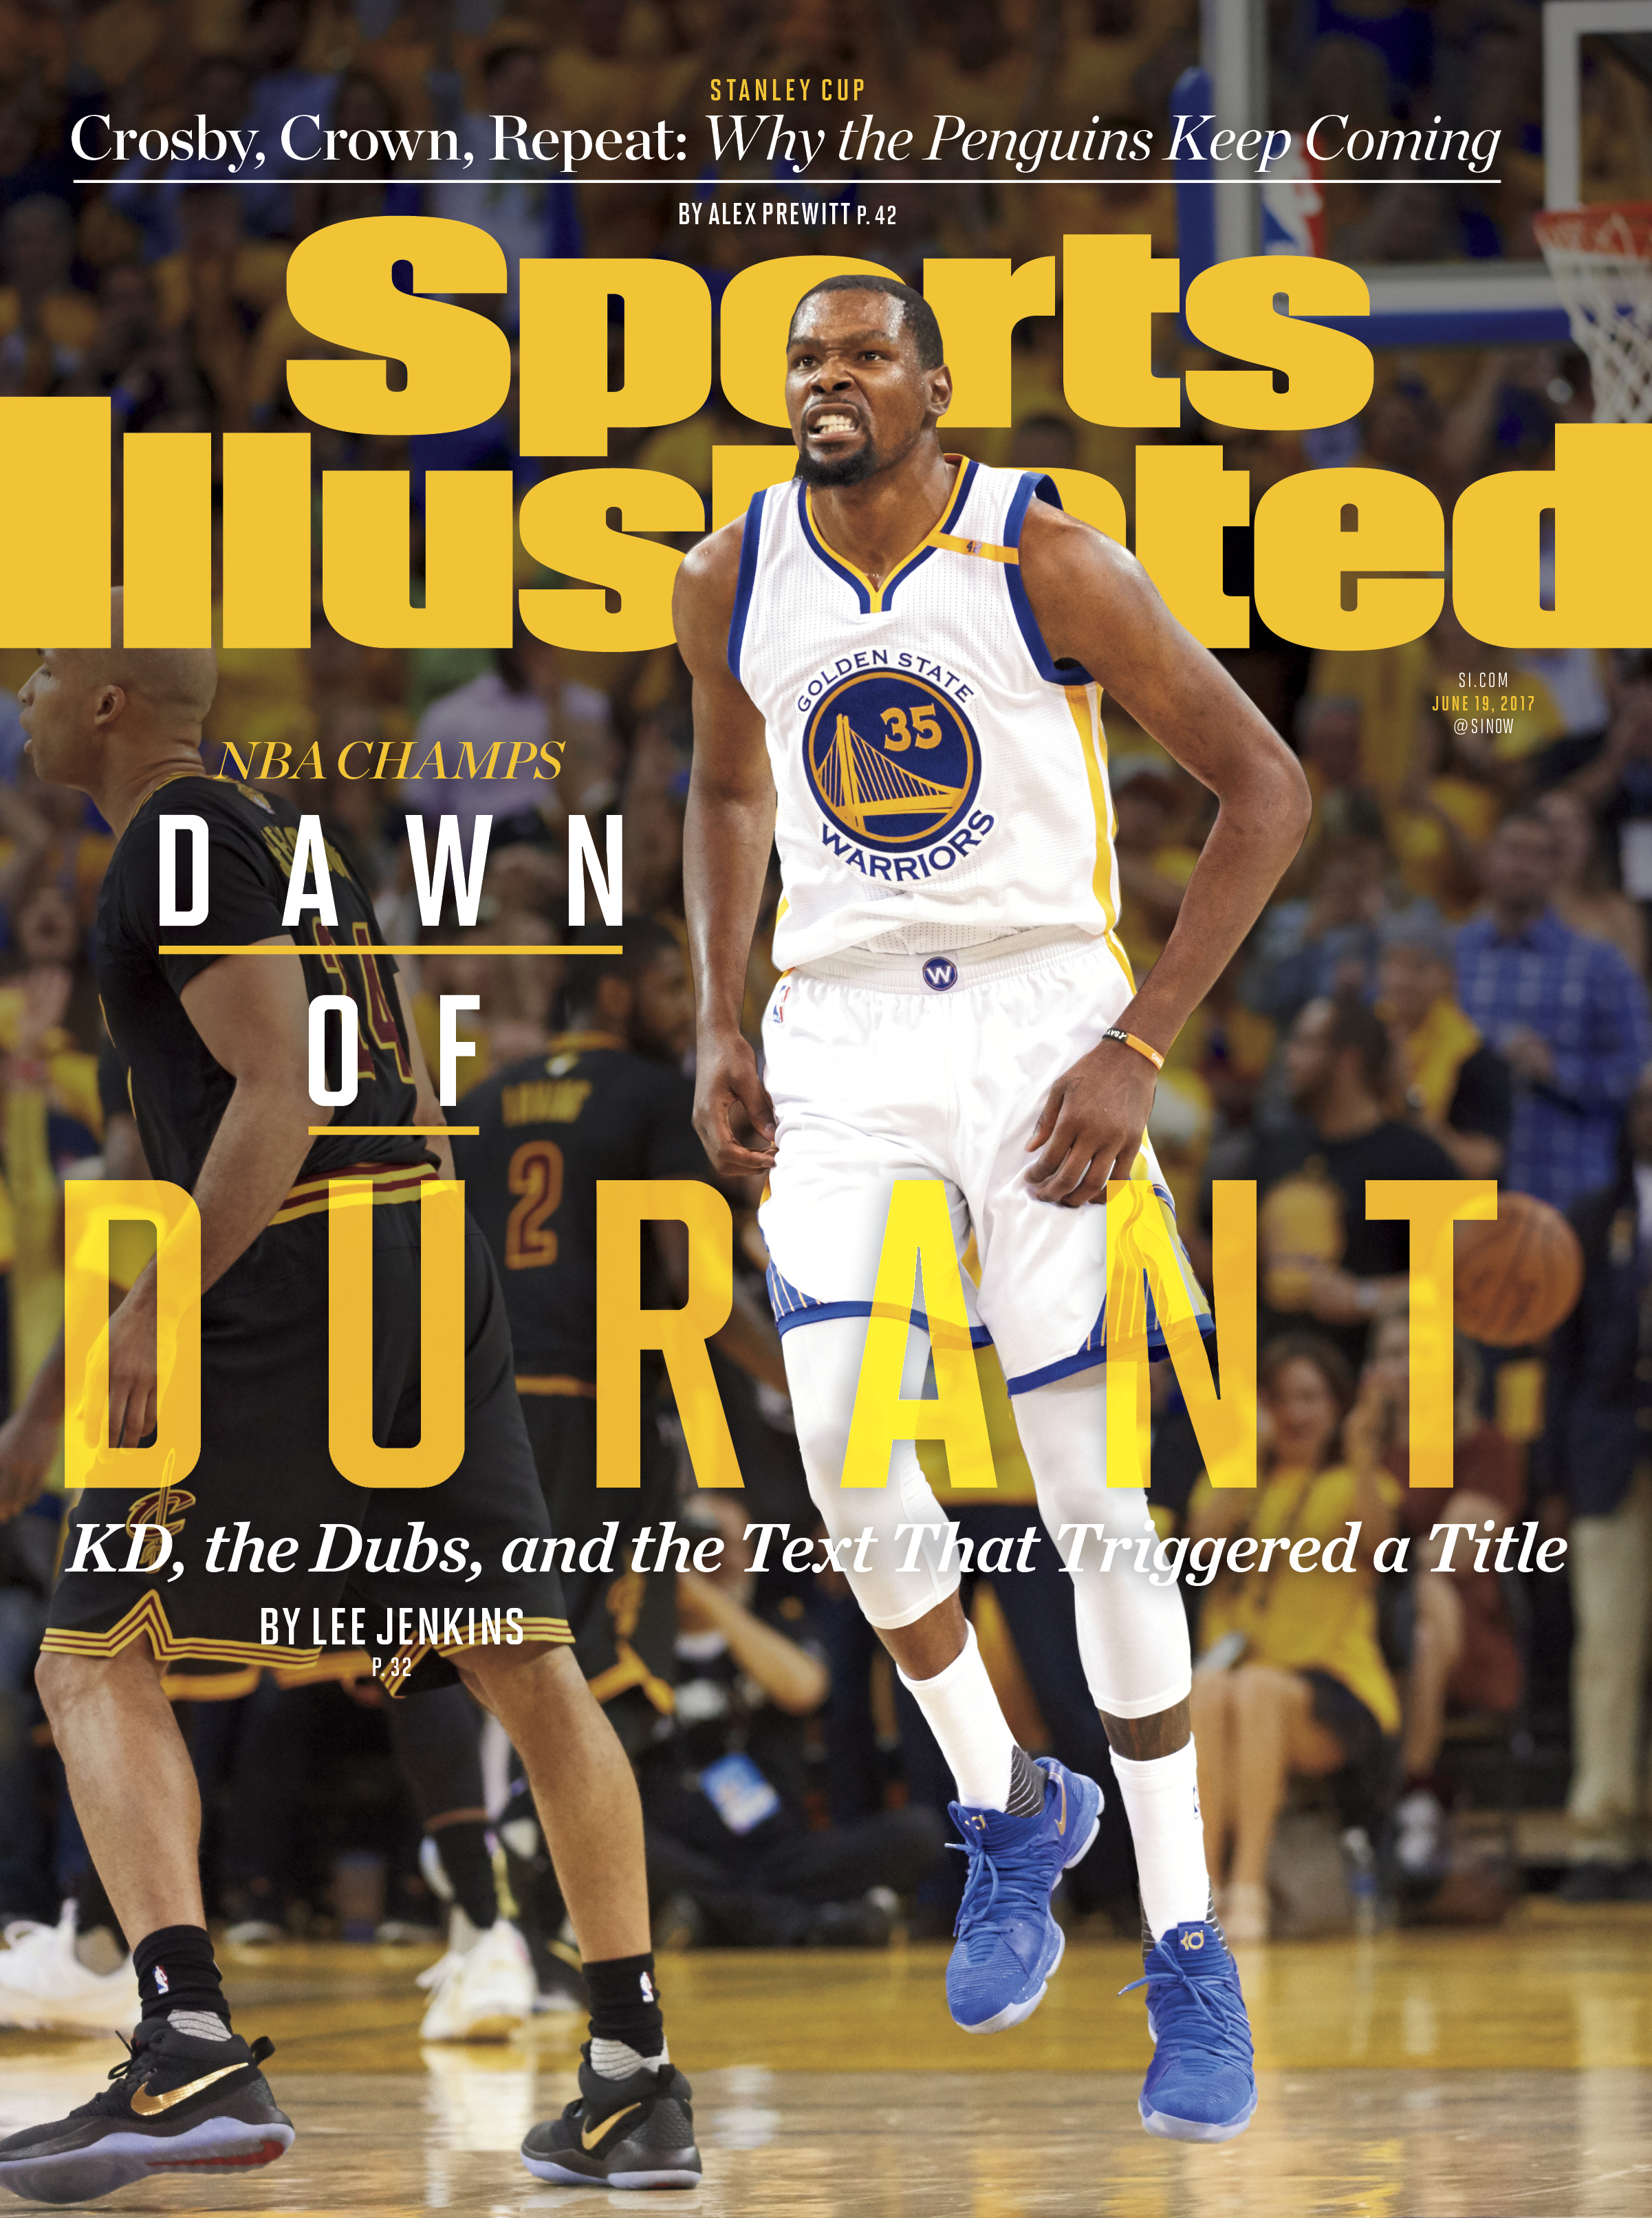 b175fb6a55ea Jenkins recounts the story of when Durant decided to join the Warriors